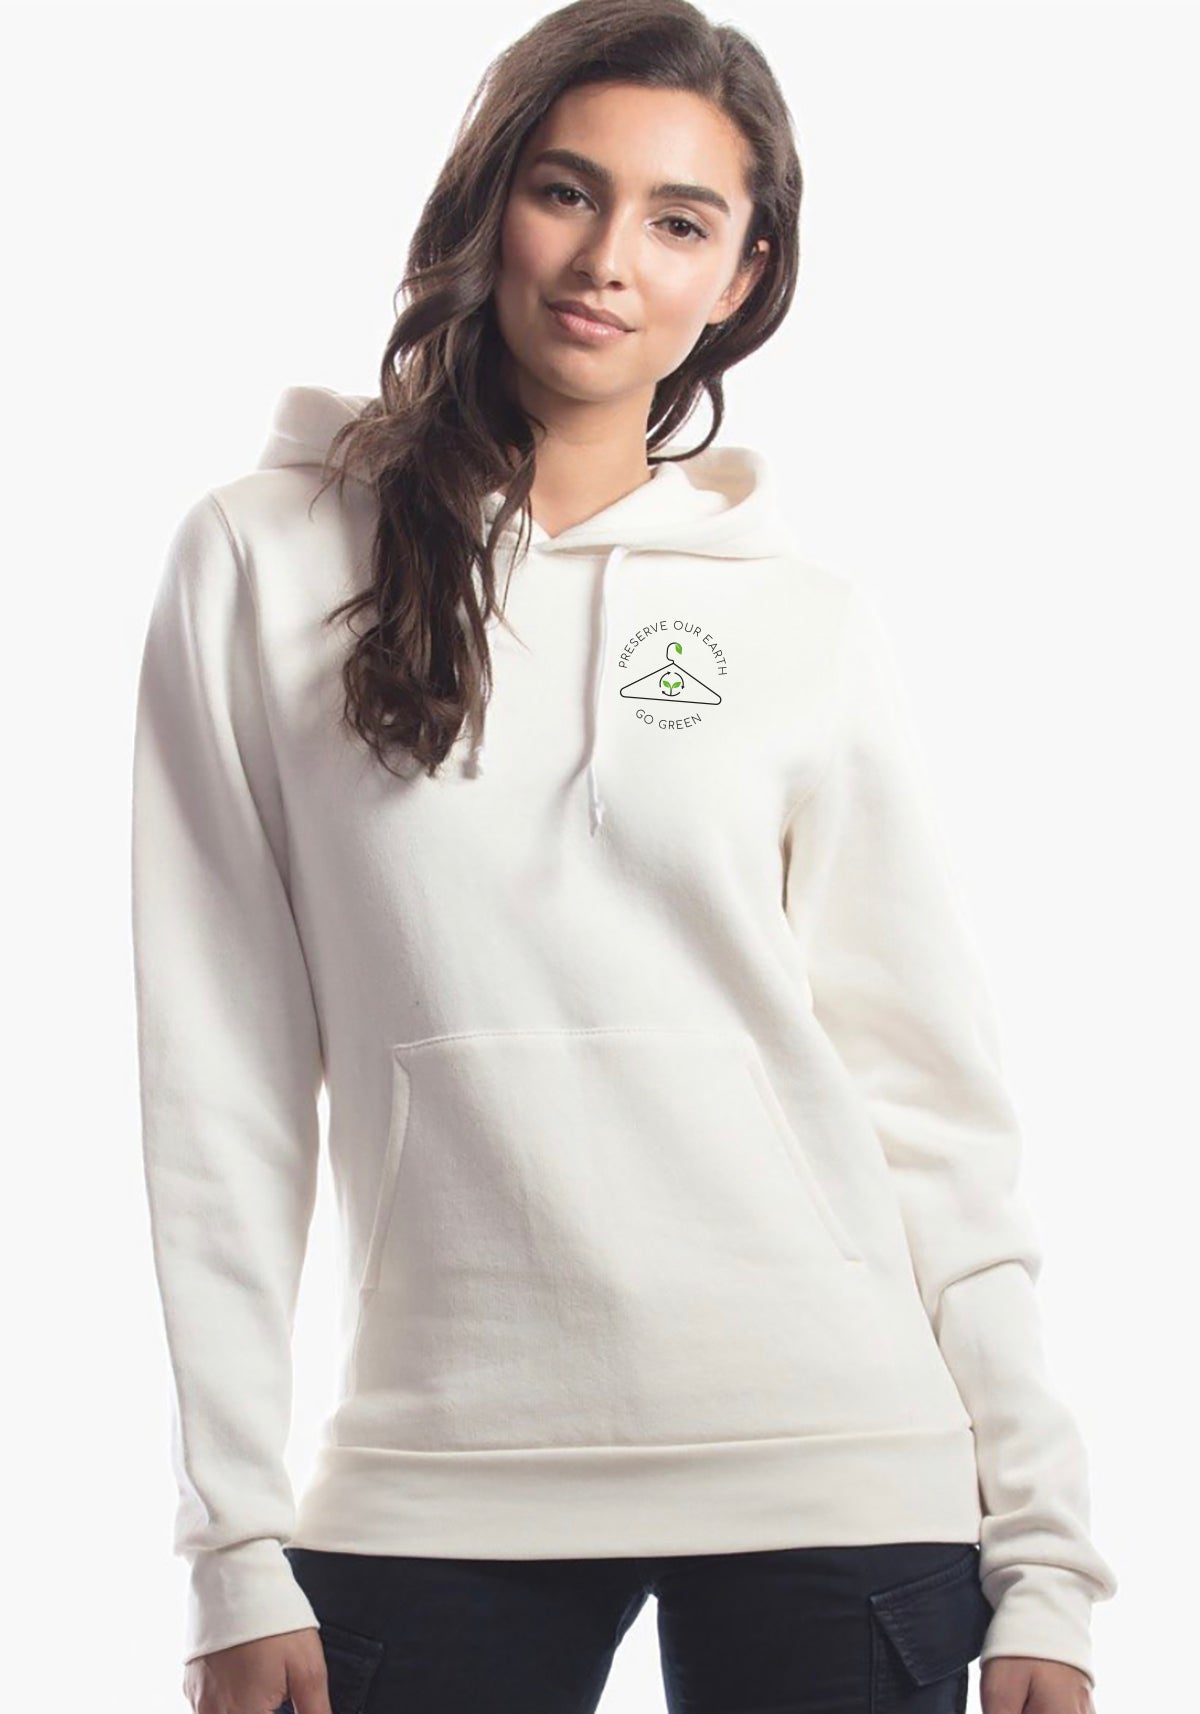 Go Green Cream Hoodie Ladies